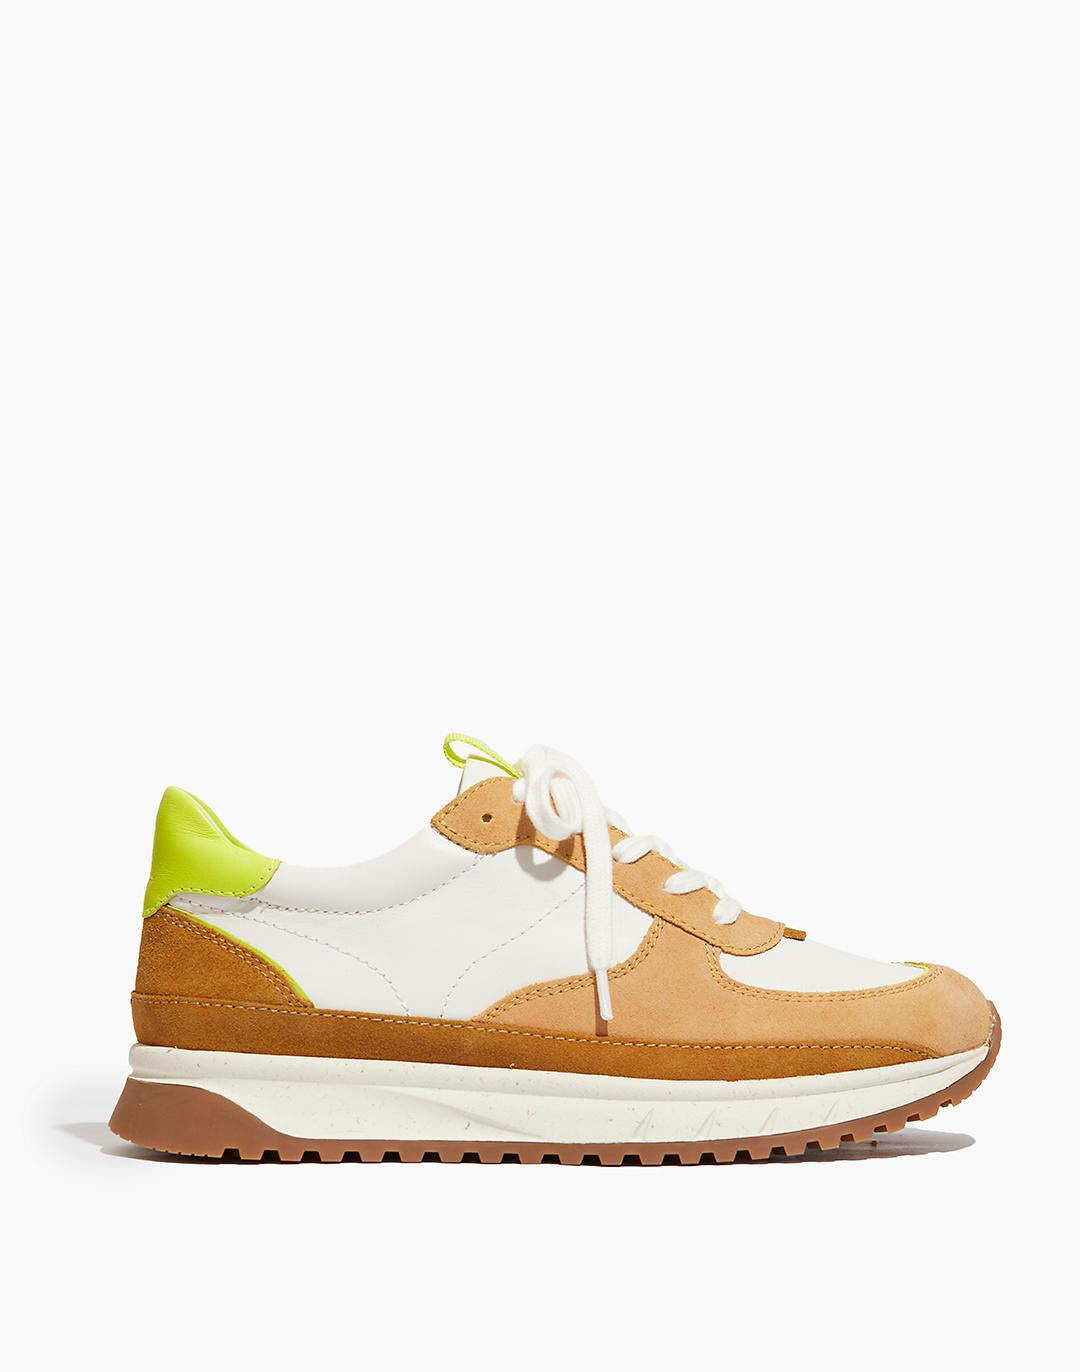 Kickoff Trainer Sneakers in Leather and Suede 1